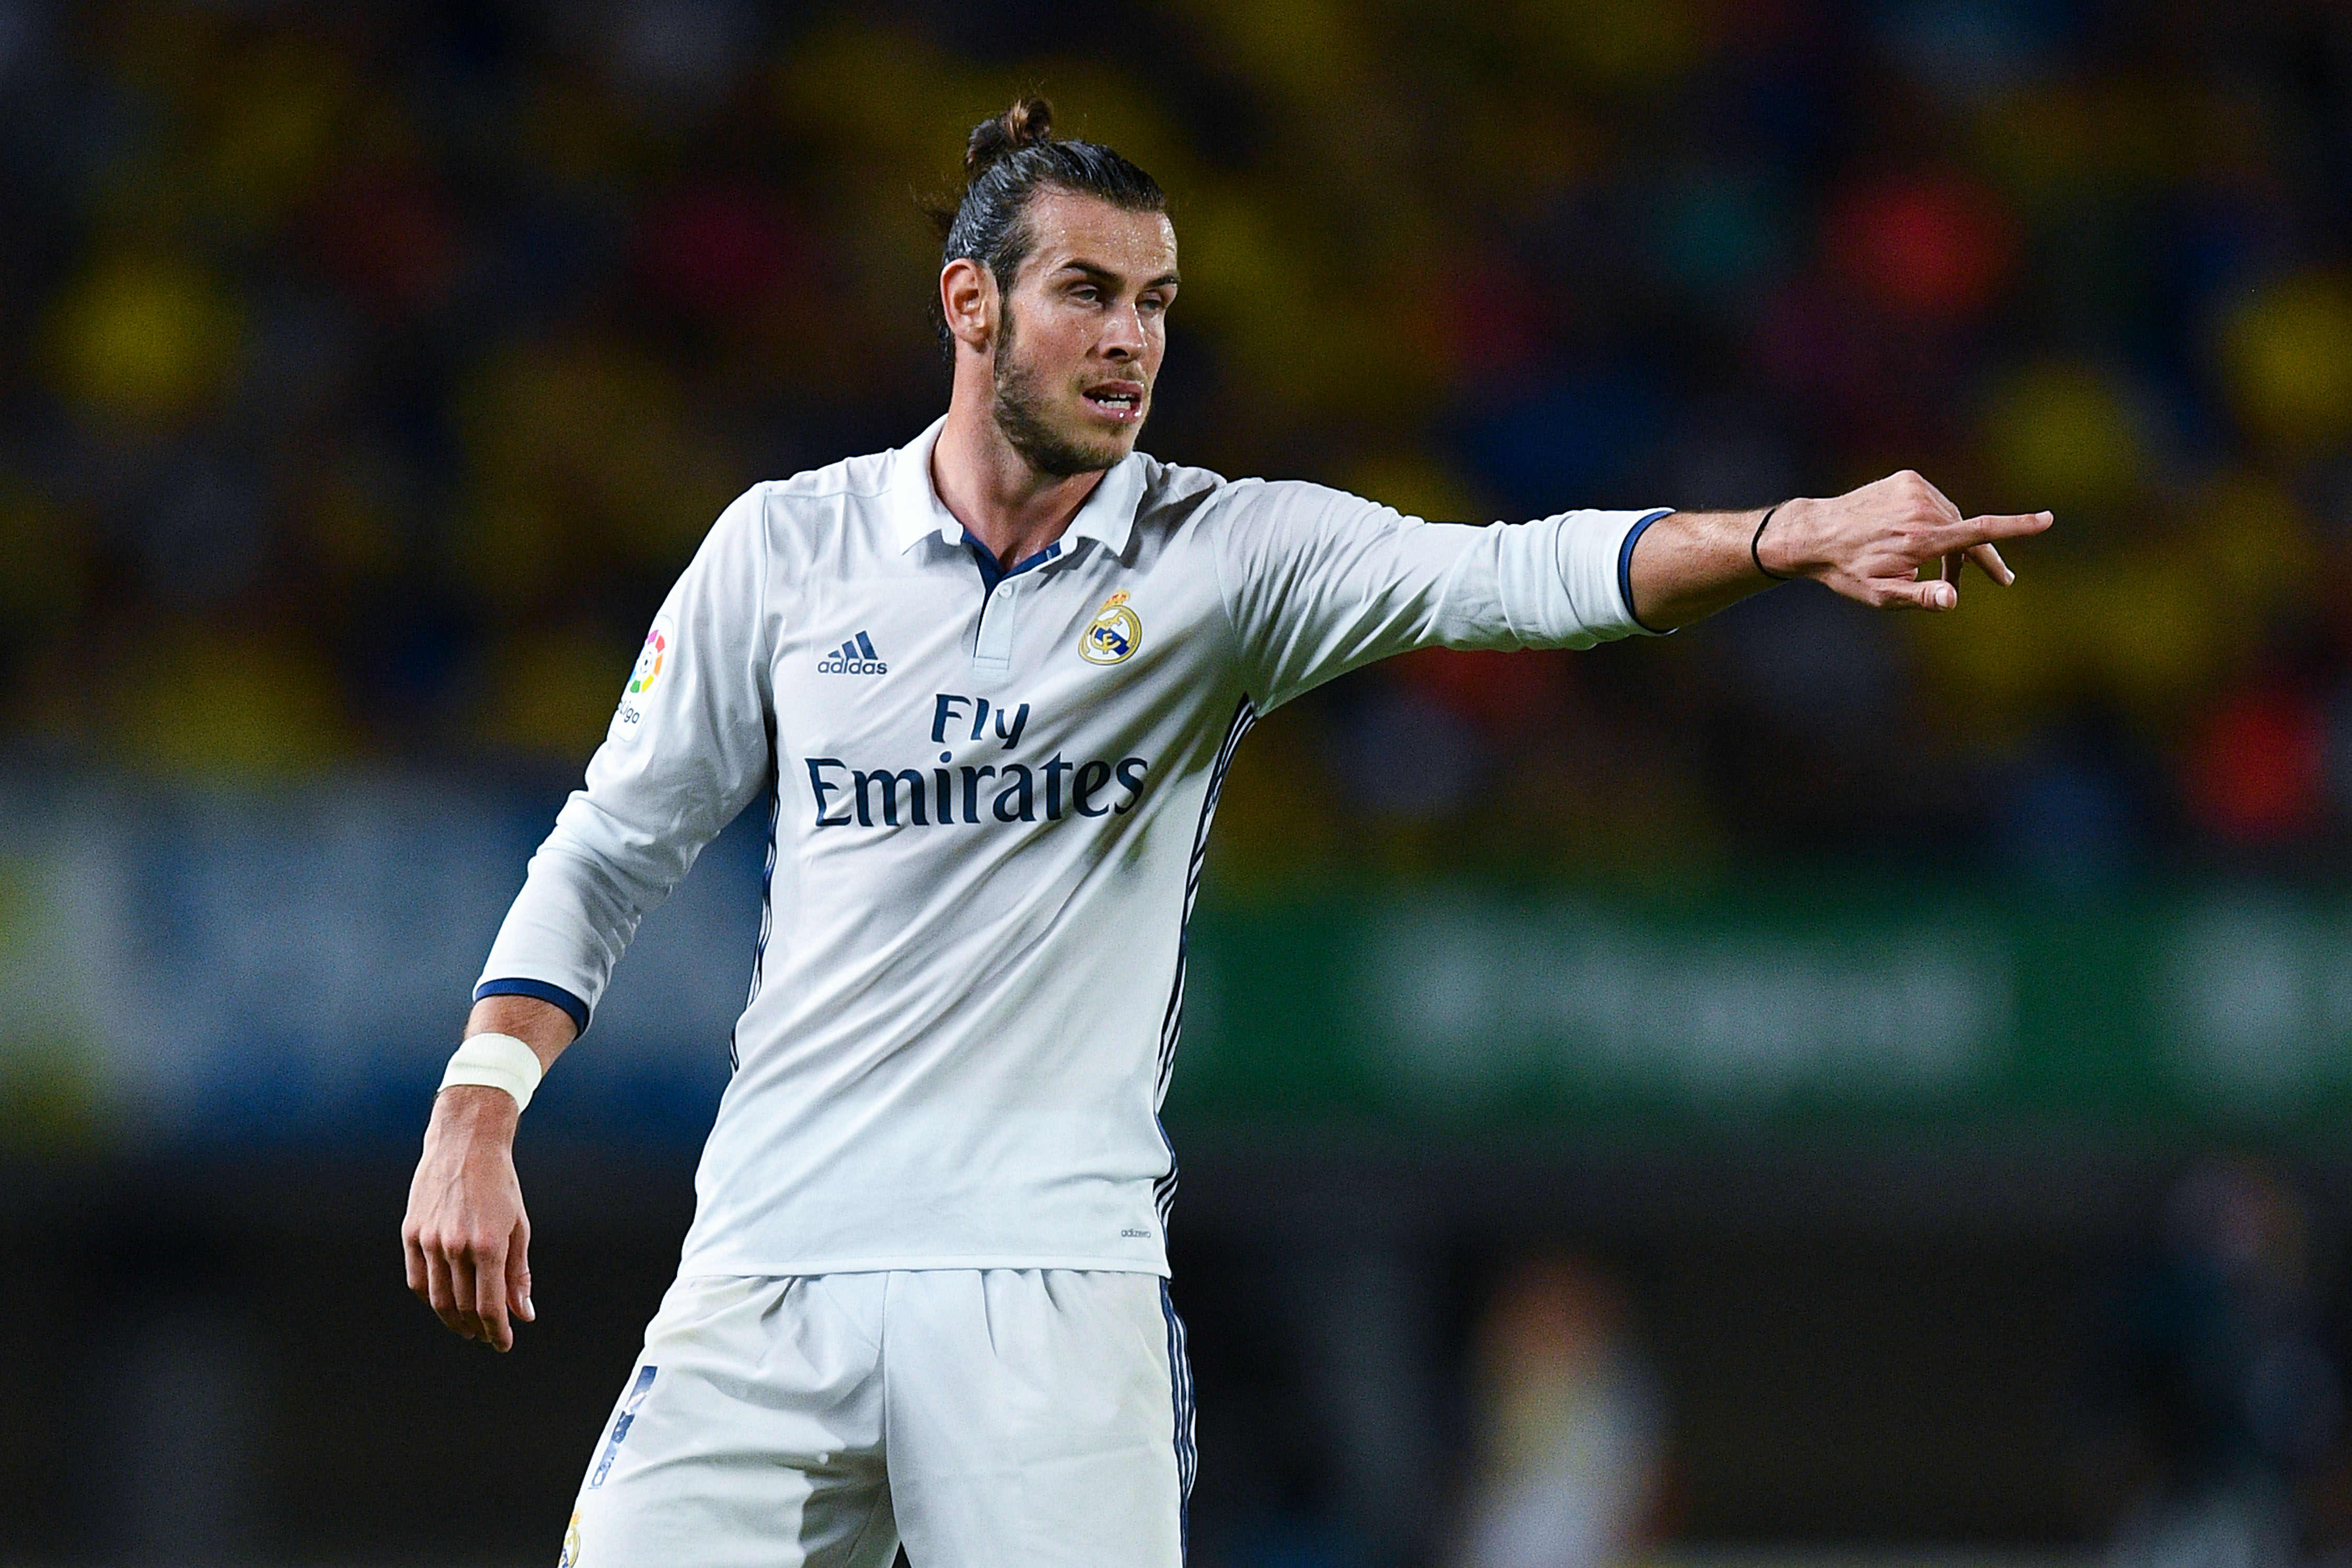 Gareth Bale Is Under Armed Guard After Bizarre Cocaine Heist